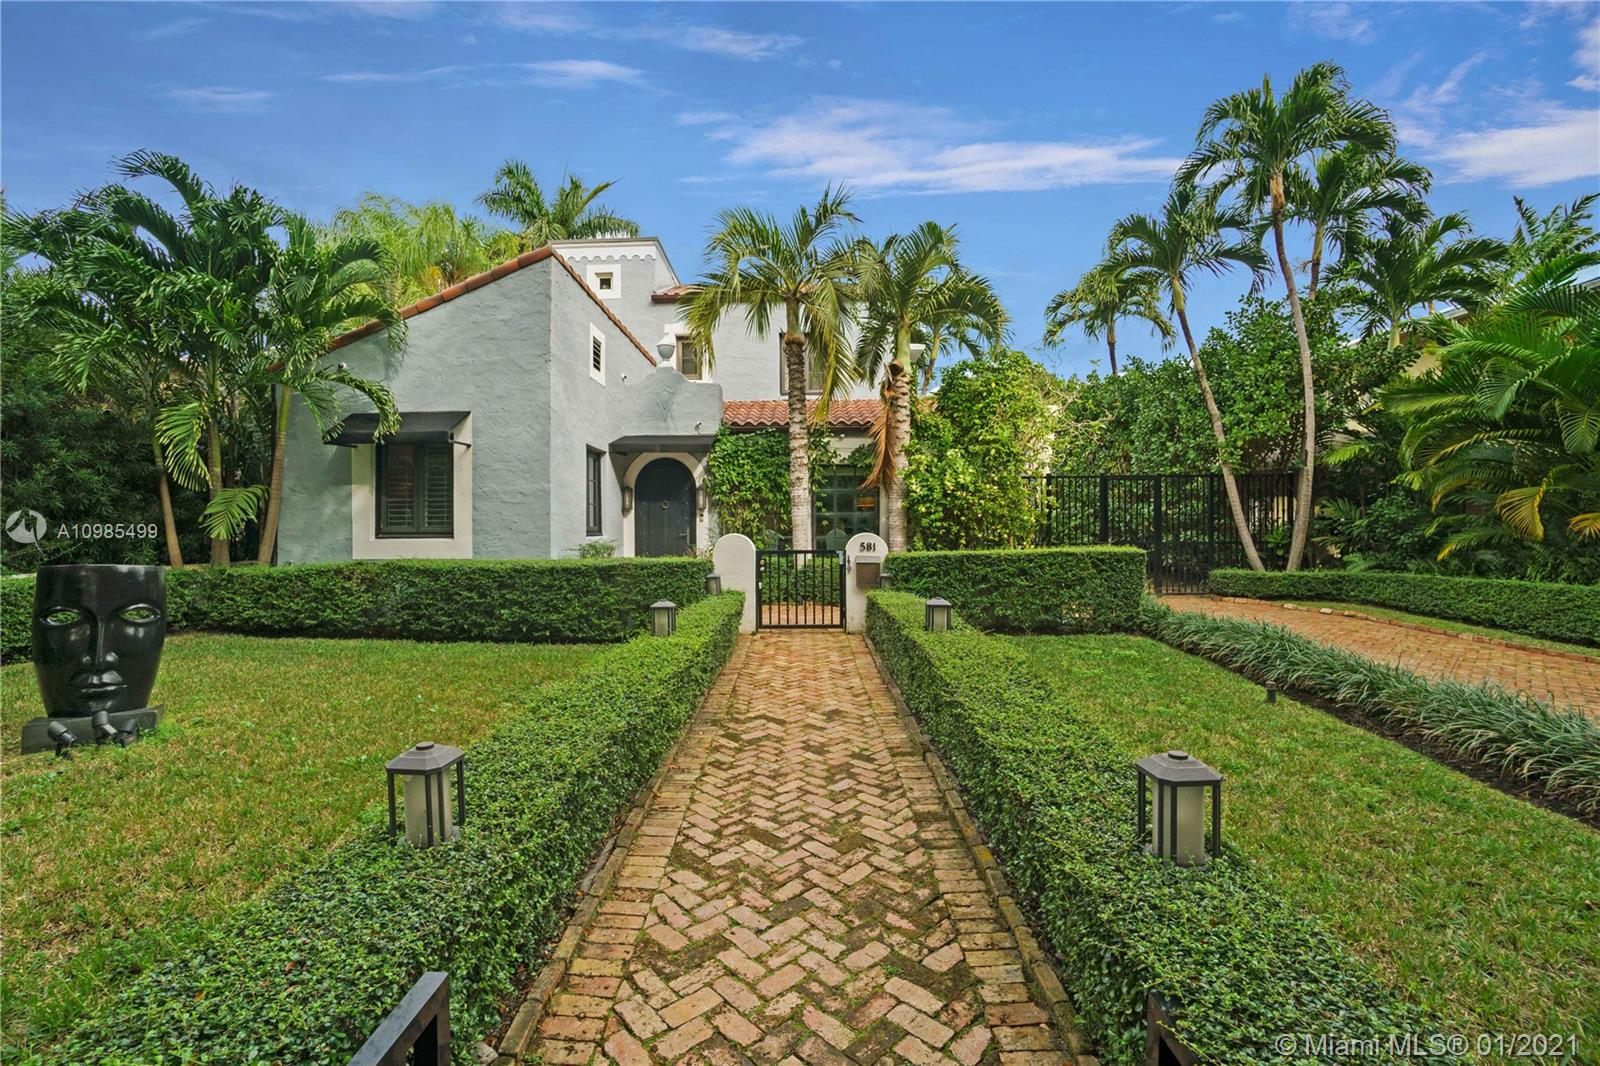 581 NE 58th St, Miami, Florida 33137, 4 Bedrooms Bedrooms, ,3 BathroomsBathrooms,Residential,For Sale,581 NE 58th St,A10985499